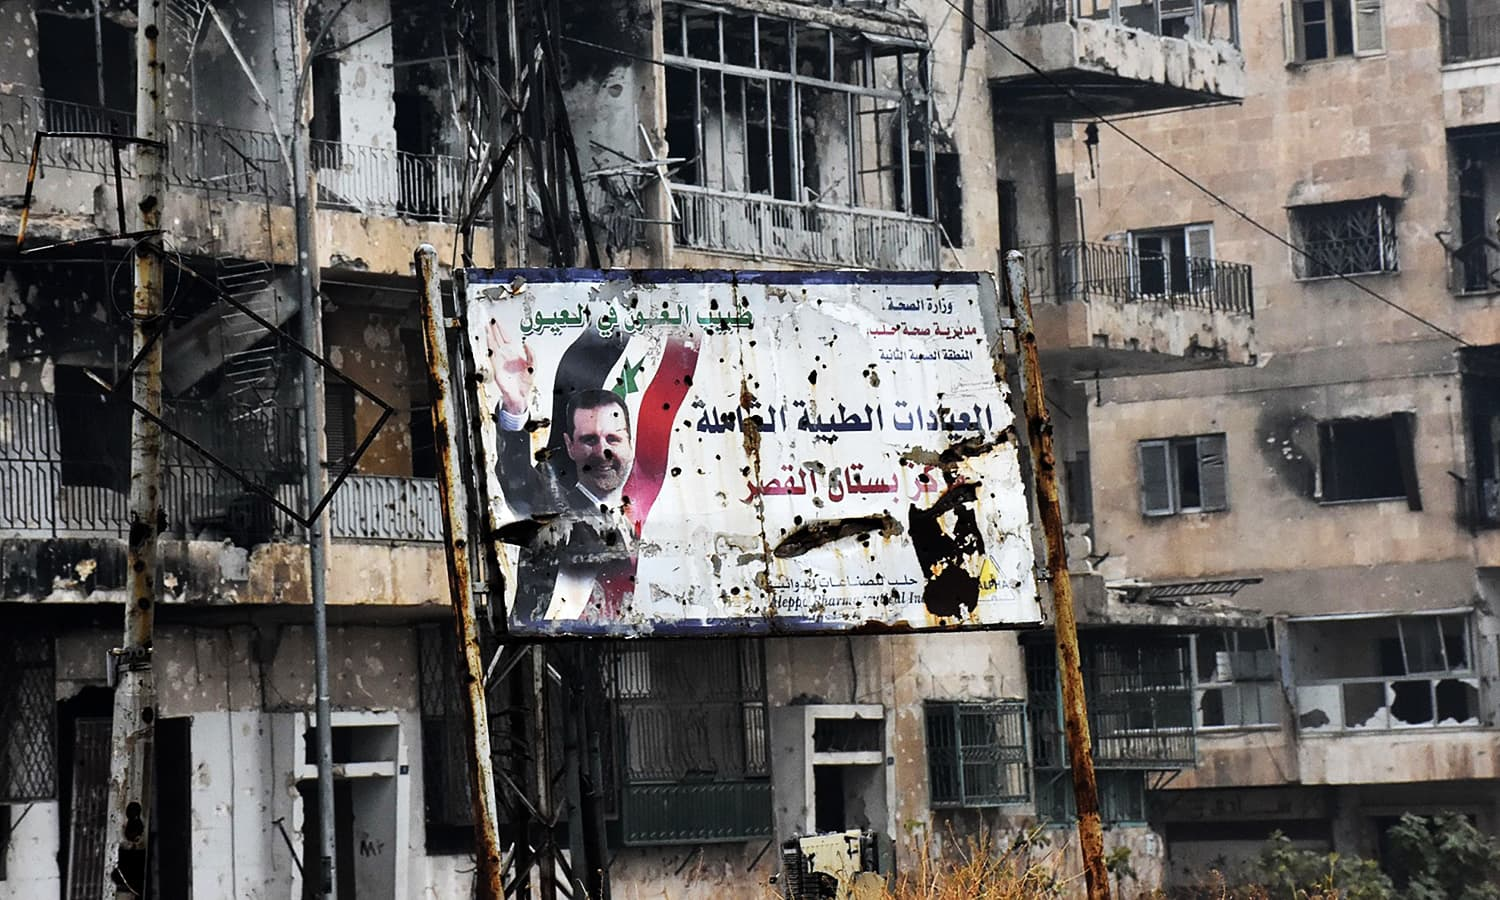 A general view shows a poster of Assad in Aleppo's Bustan al-Qasr neighbourhood after Syrian pro-government forces captured the area in the eastern part of the war torn city on December 13, 2016. ─ AFP